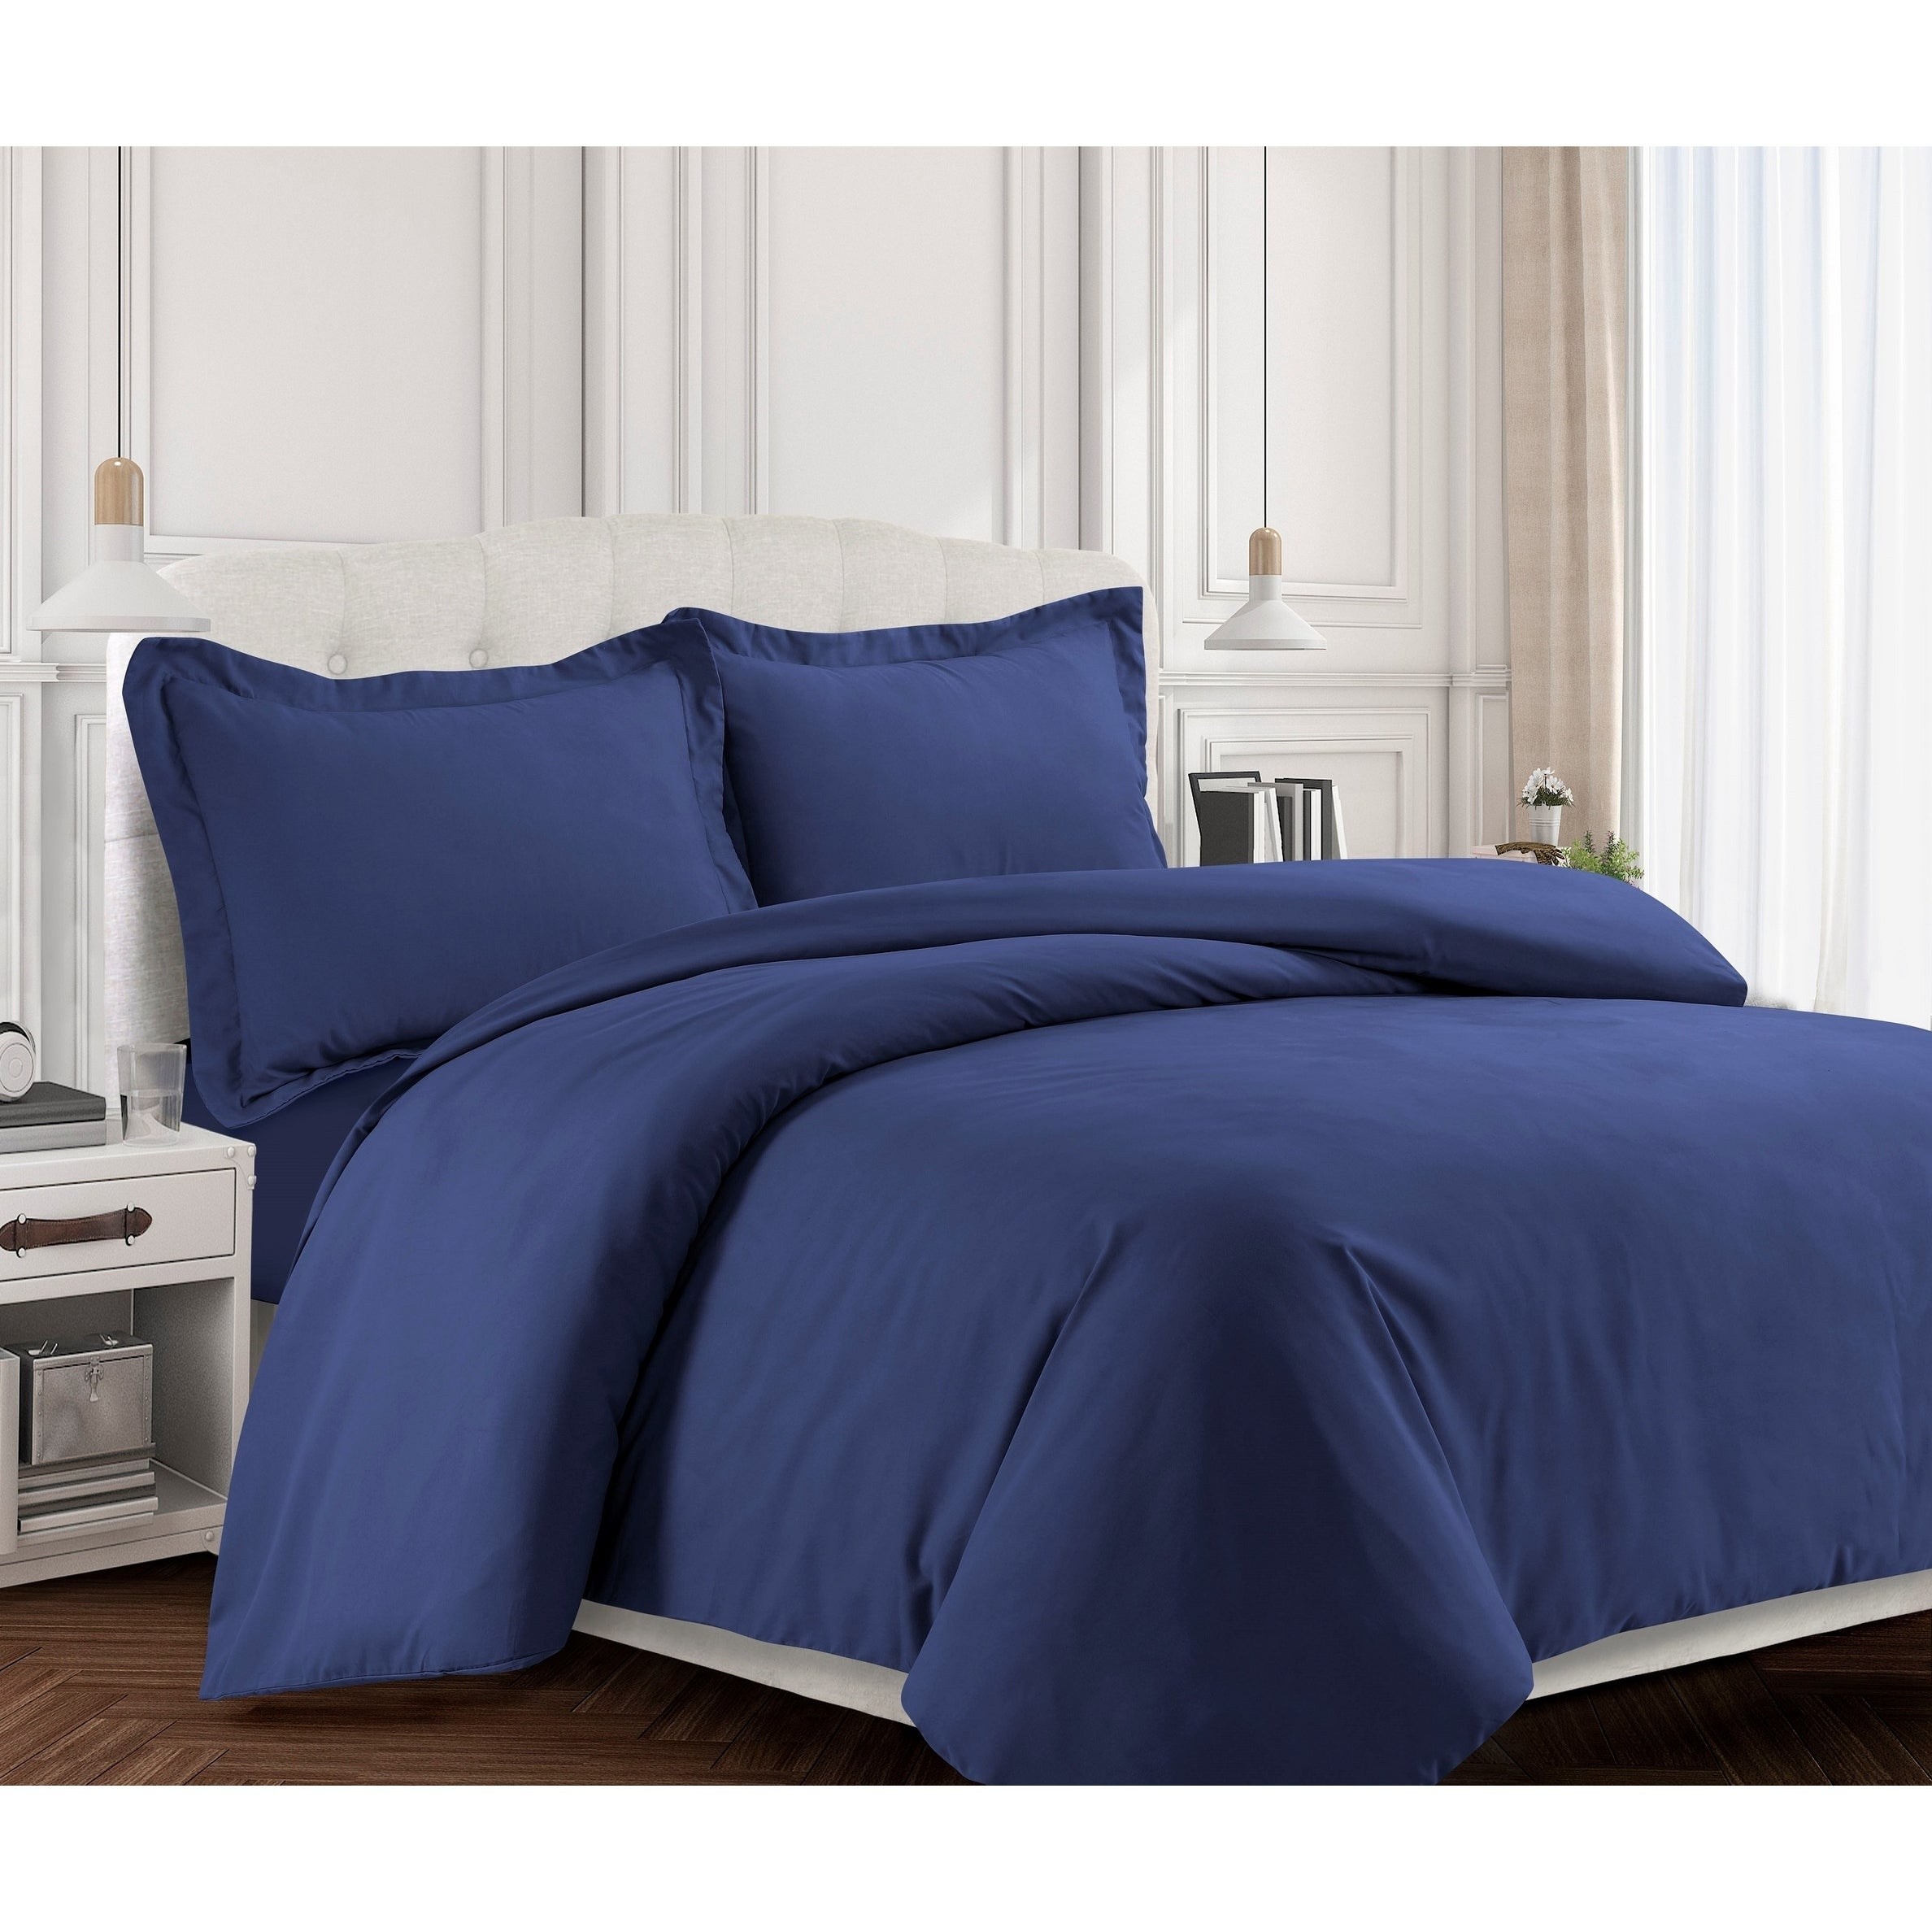 Valencia Oversized Duvet Cover Set Assorted Colors Ebay